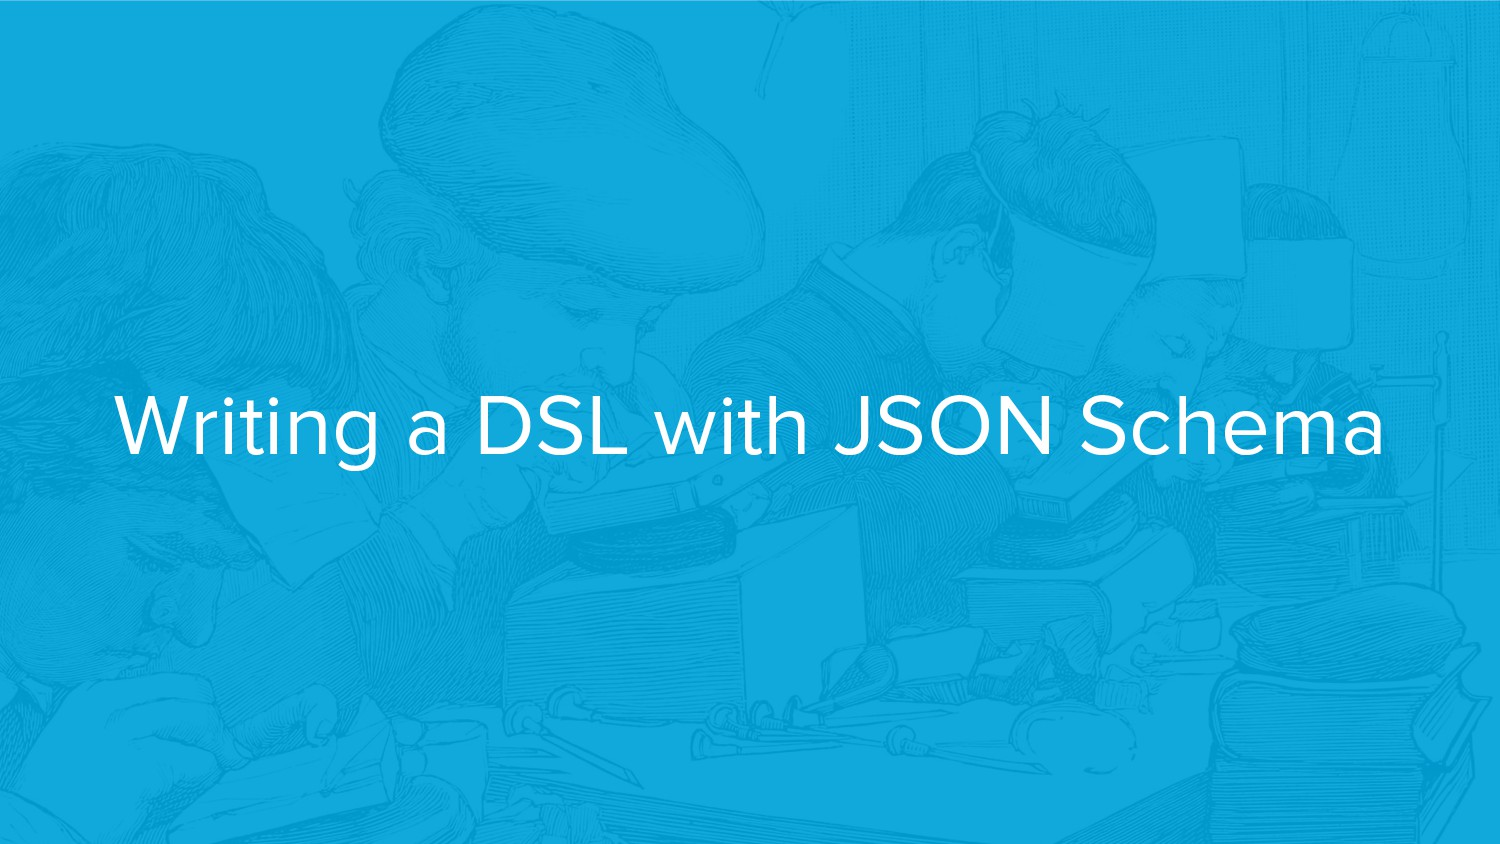 Writing a DSL with JSON Schema